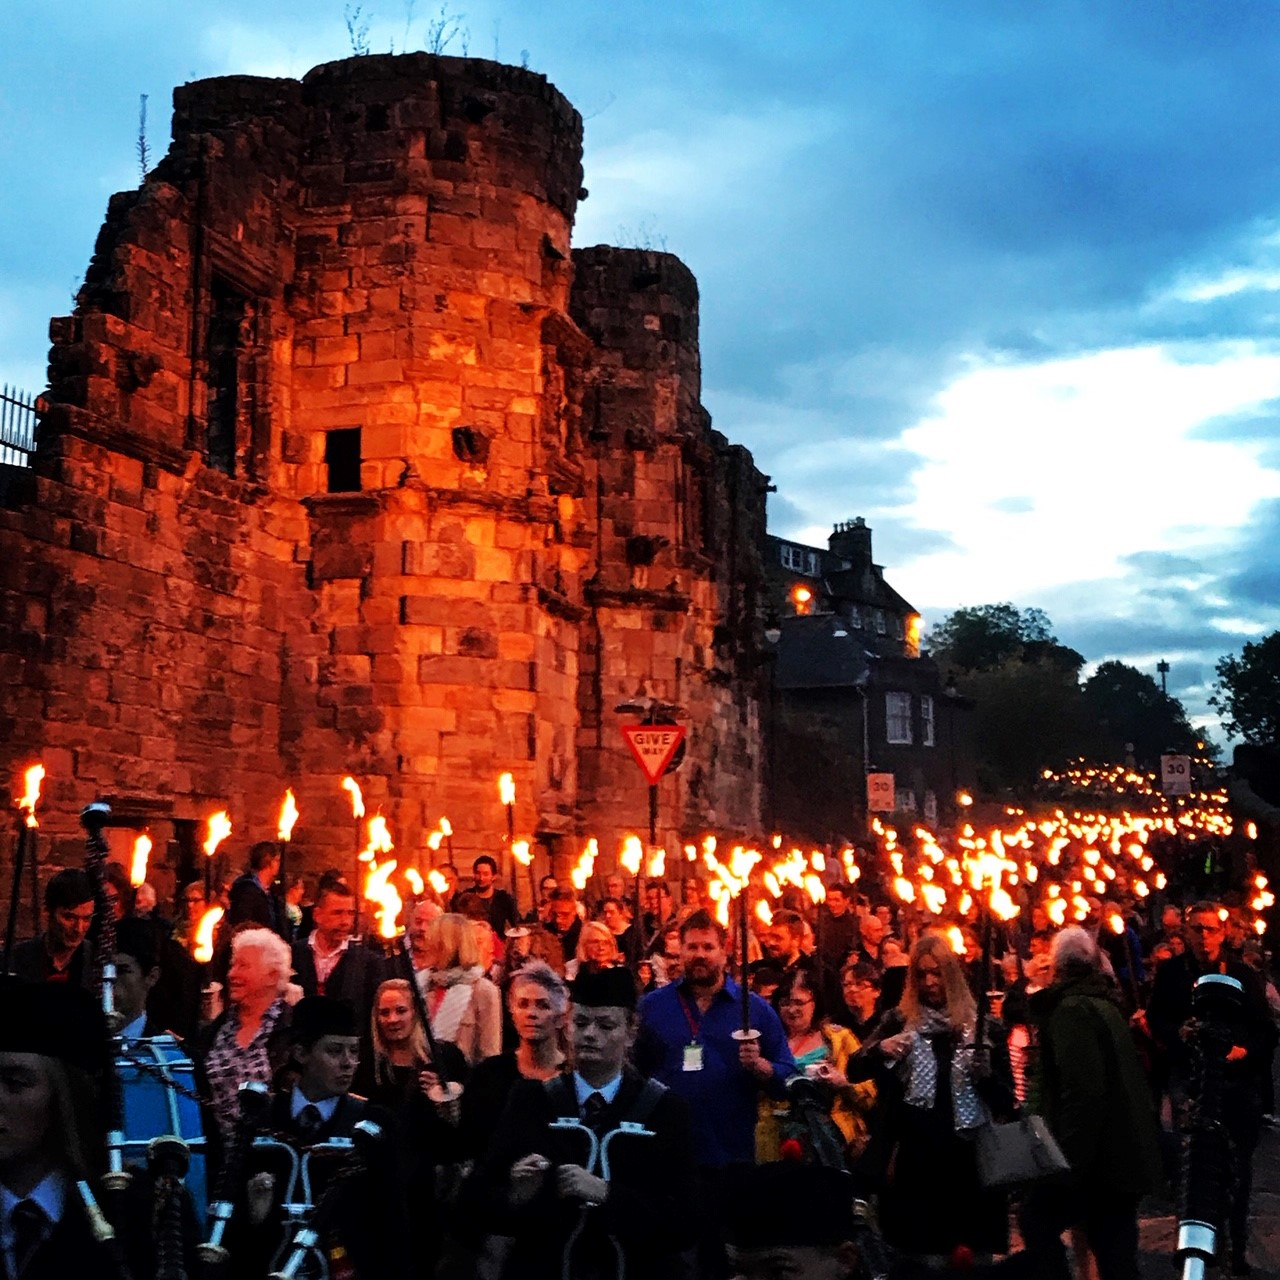 Bloody Scotland - Opening Torchlight Parade